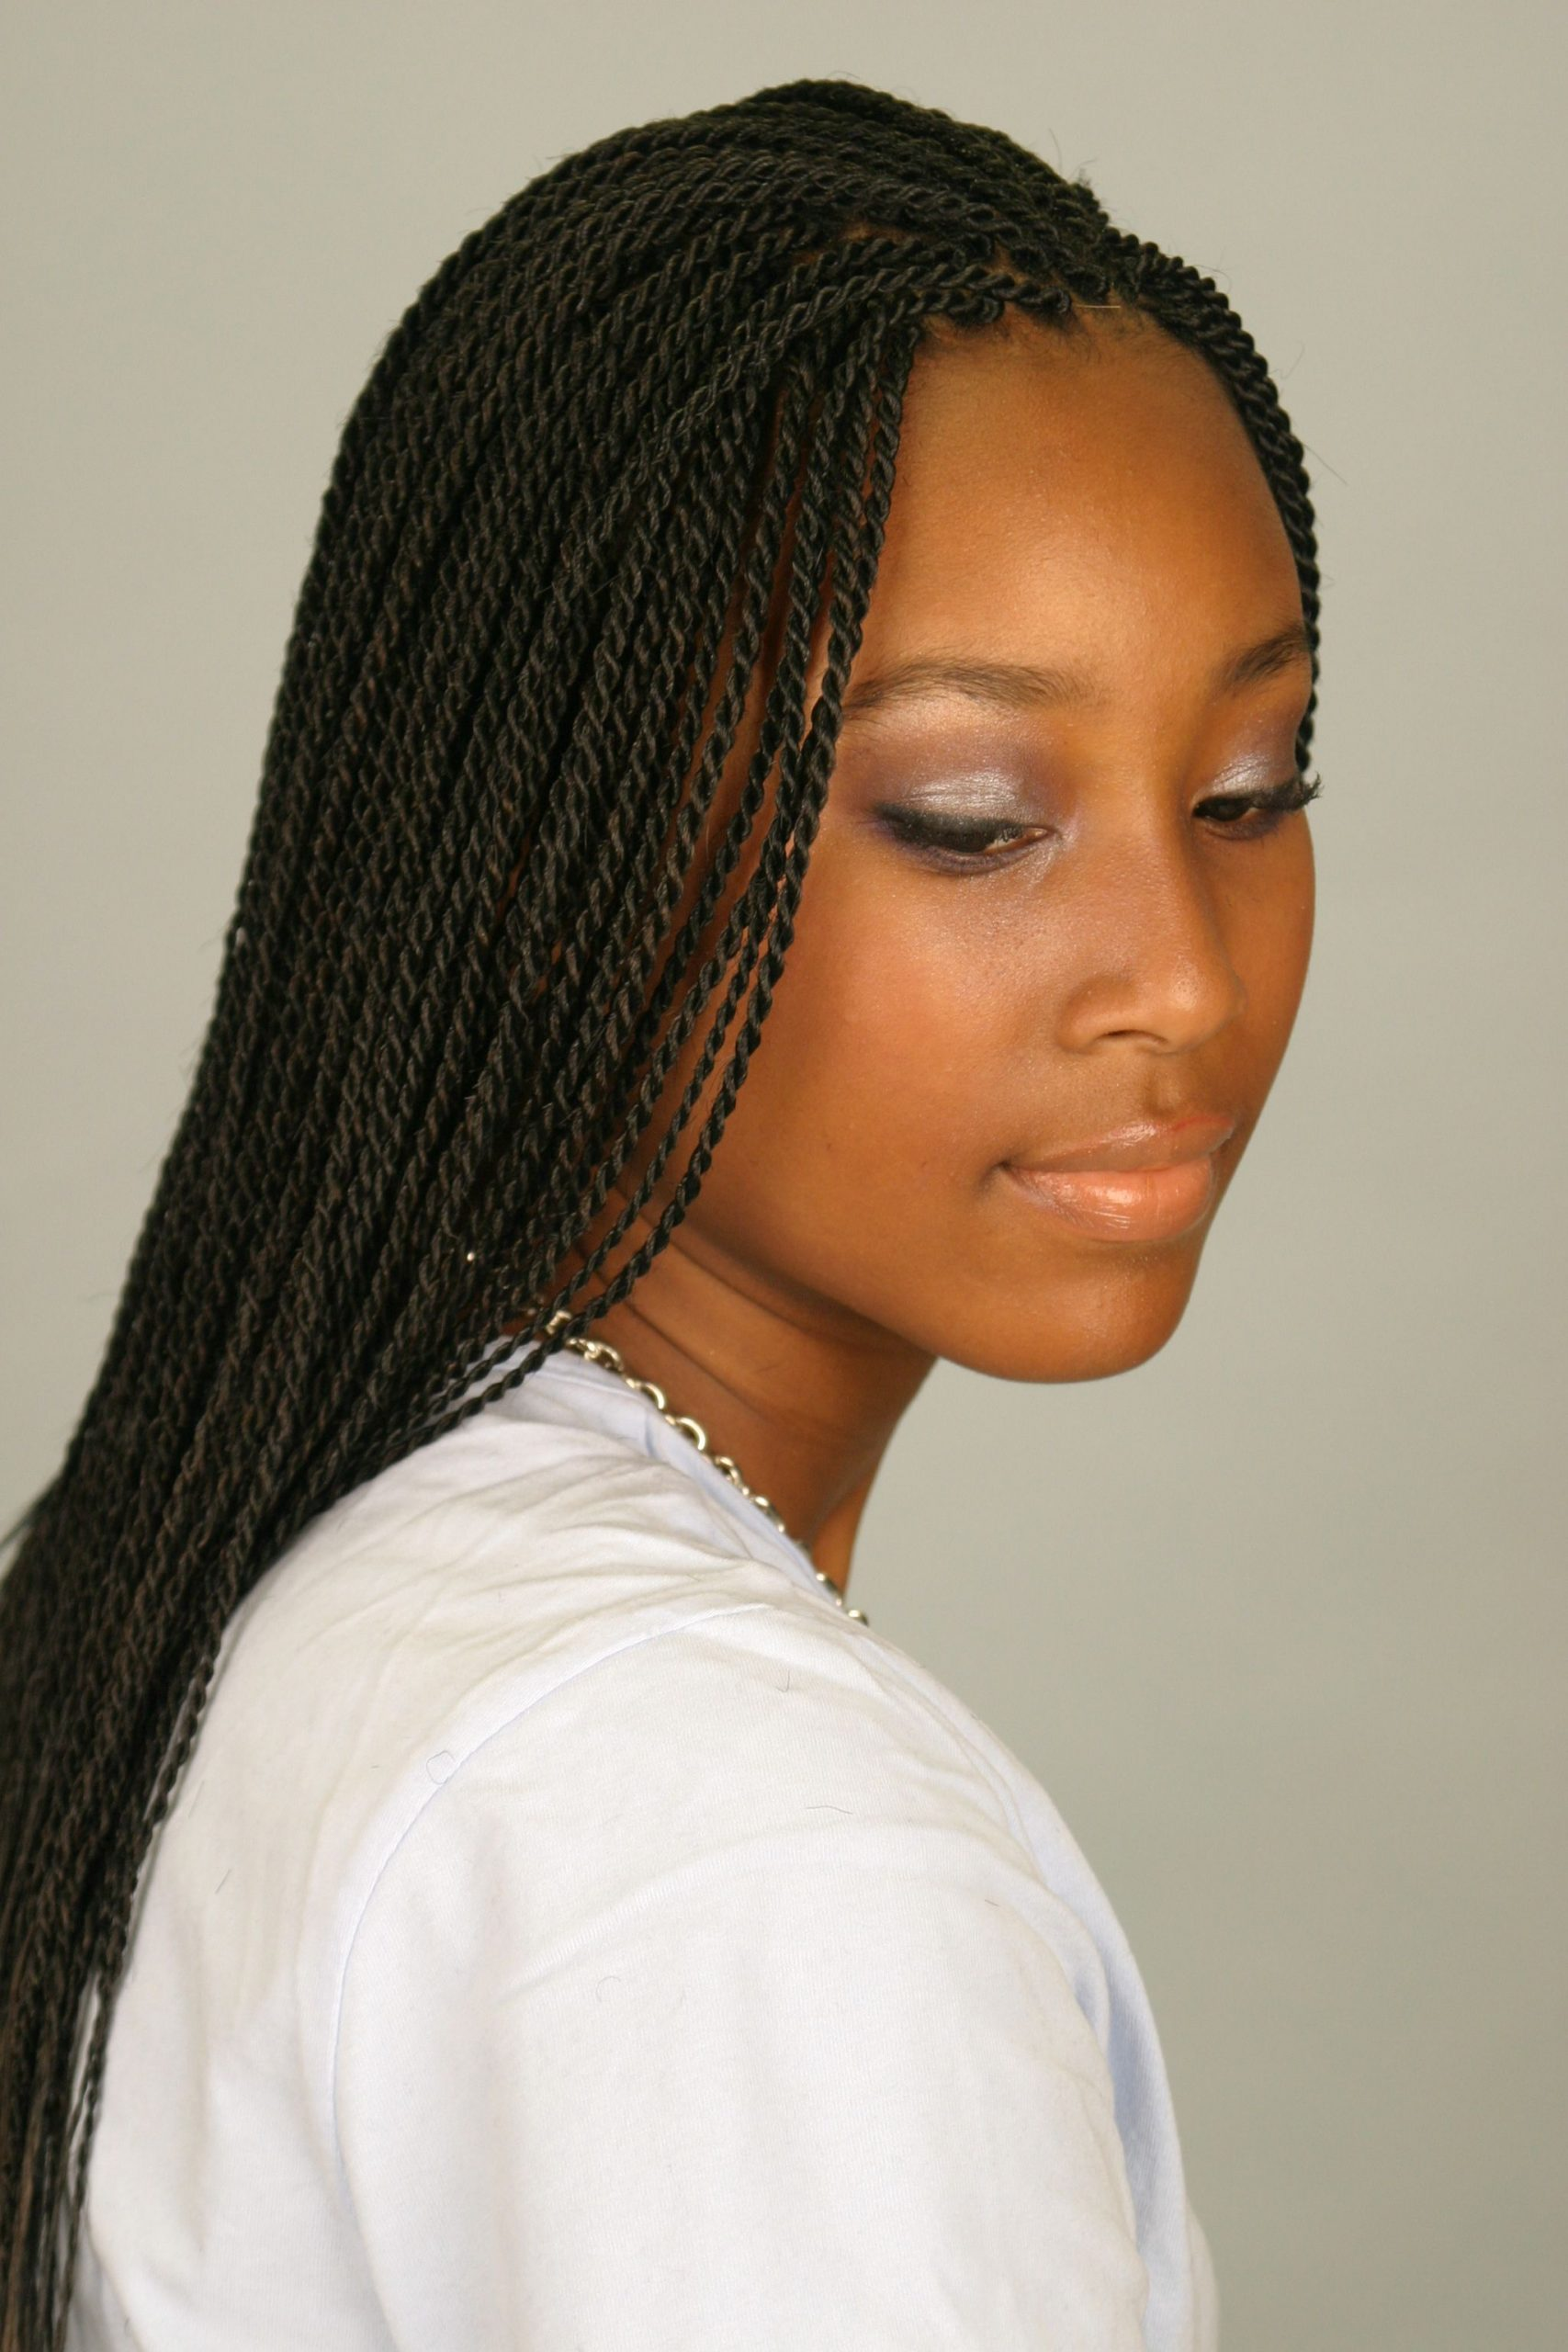 Twist Braids Hairstyles hairstyleforblackwomen.net 79 scaled